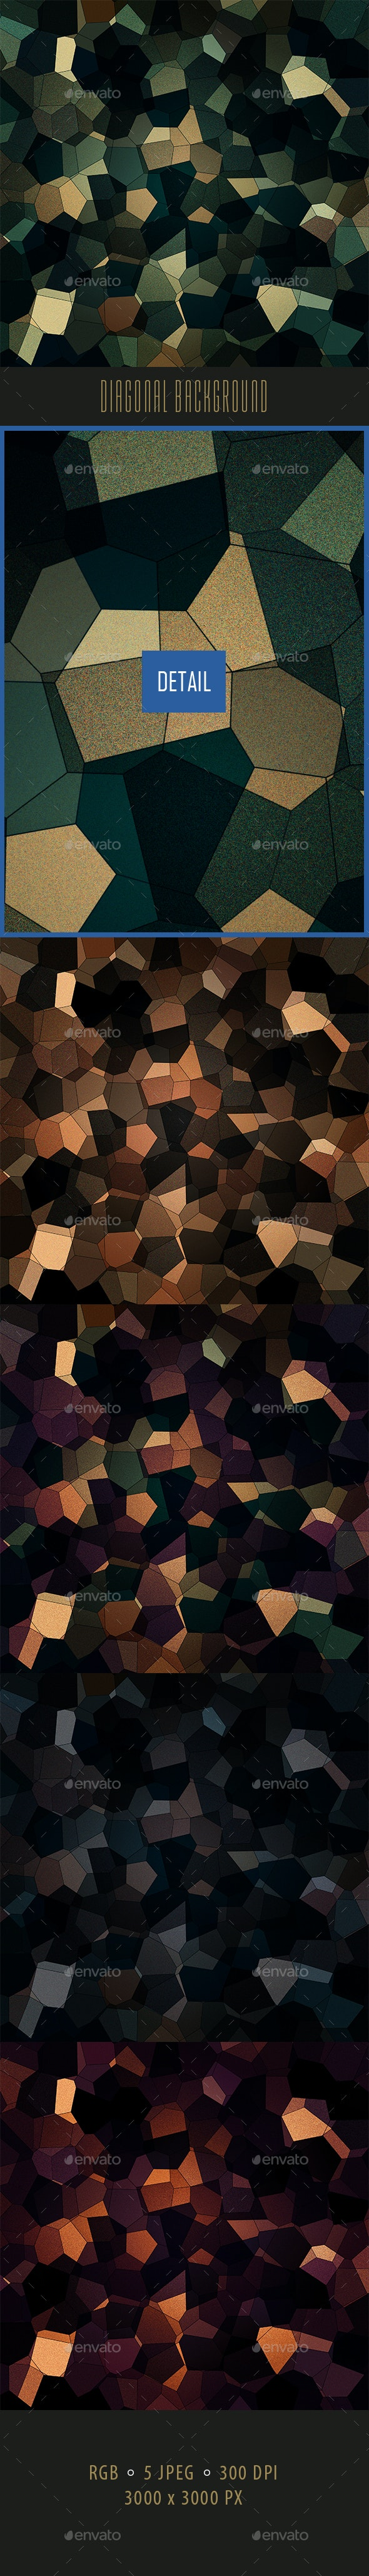 Diagonal Background - Abstract Backgrounds